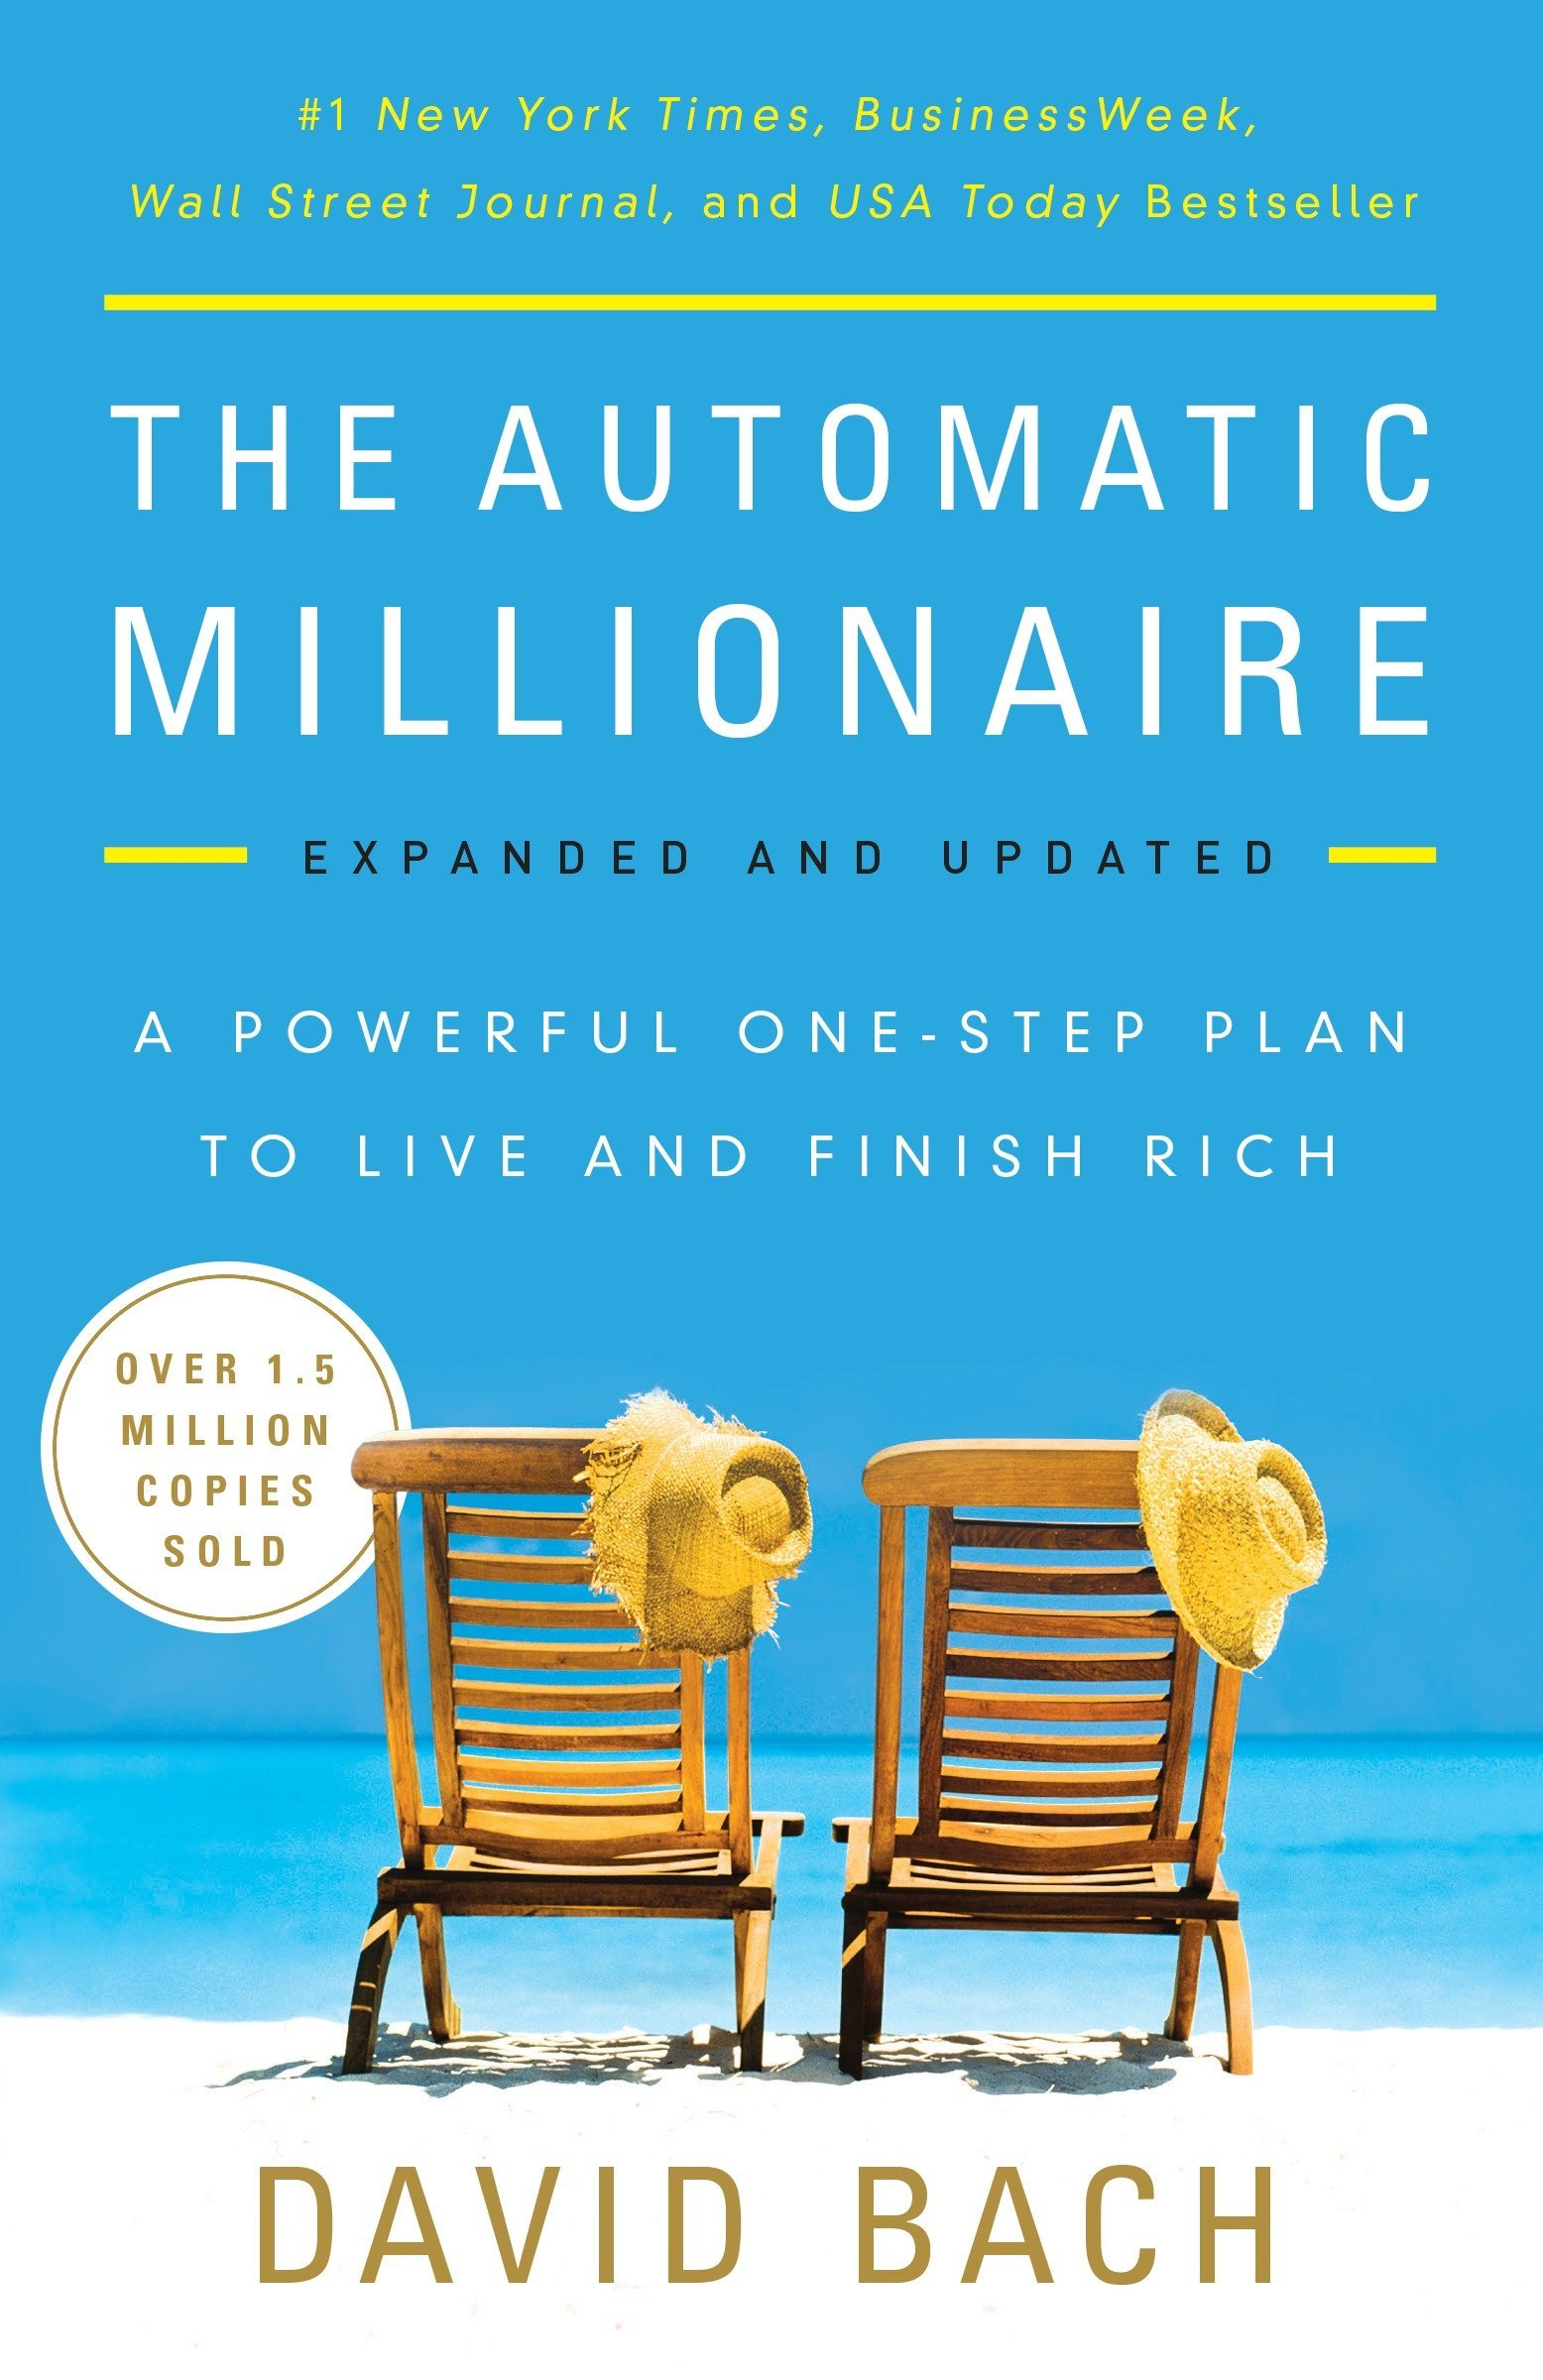 the automatic millionaire expanded and updated a powerful one step plan to live and finish rich